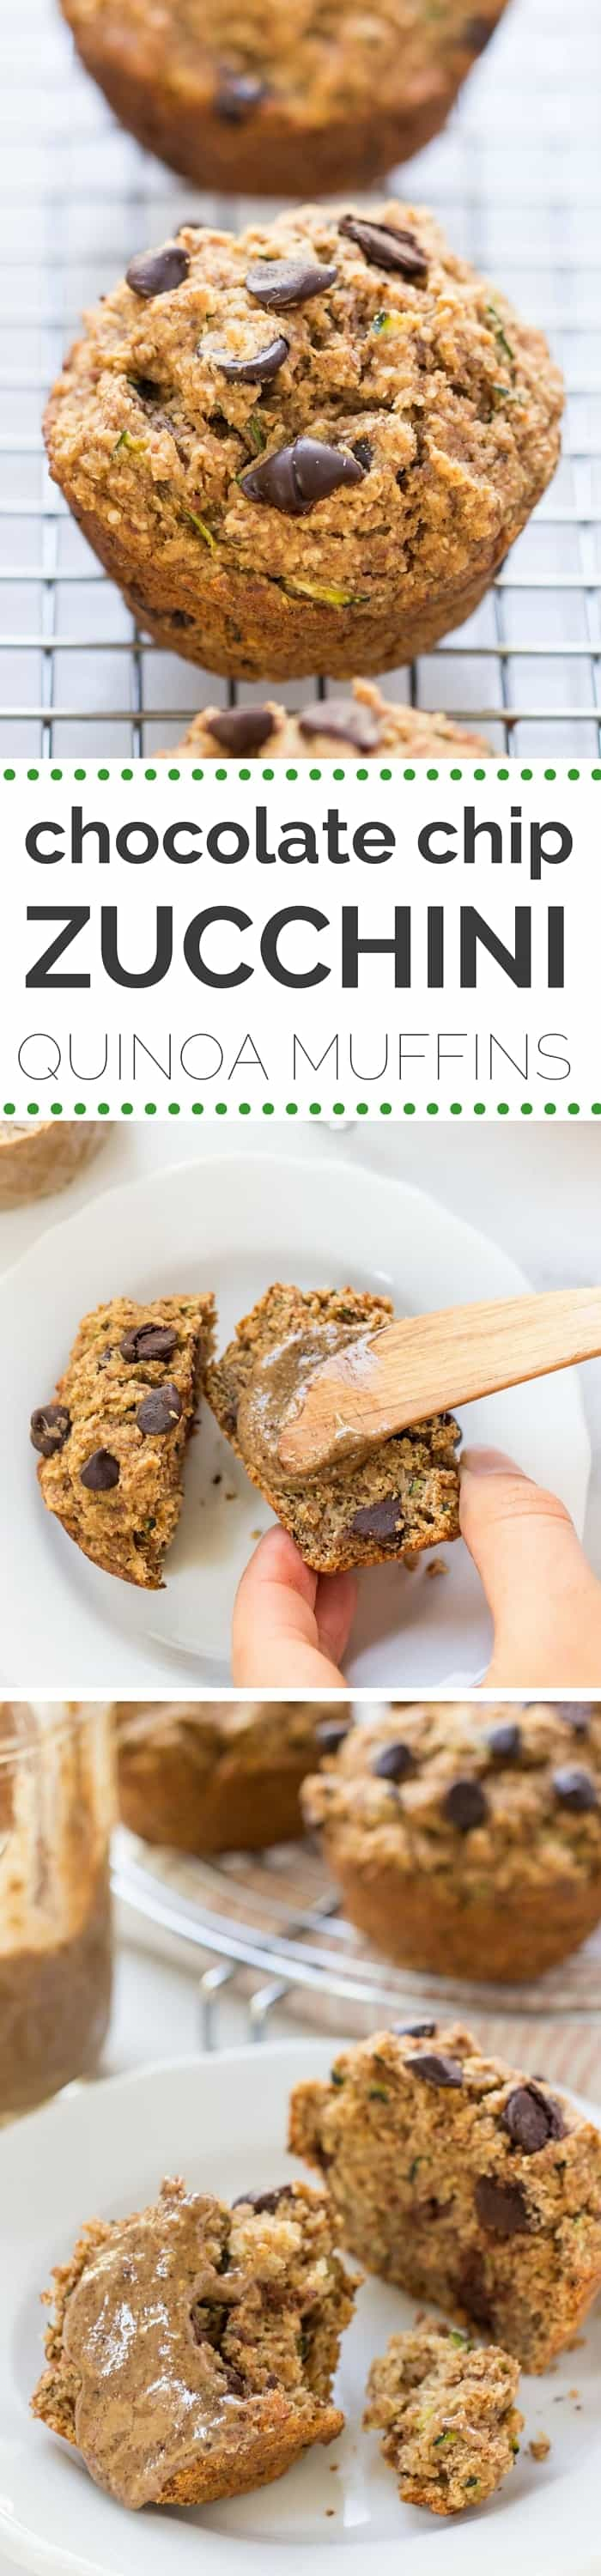 Skinny Chocolate Chip Zucchini Quinoa Muffins -- made without any oils, eggs, dairy, refined sugar OR gluten!